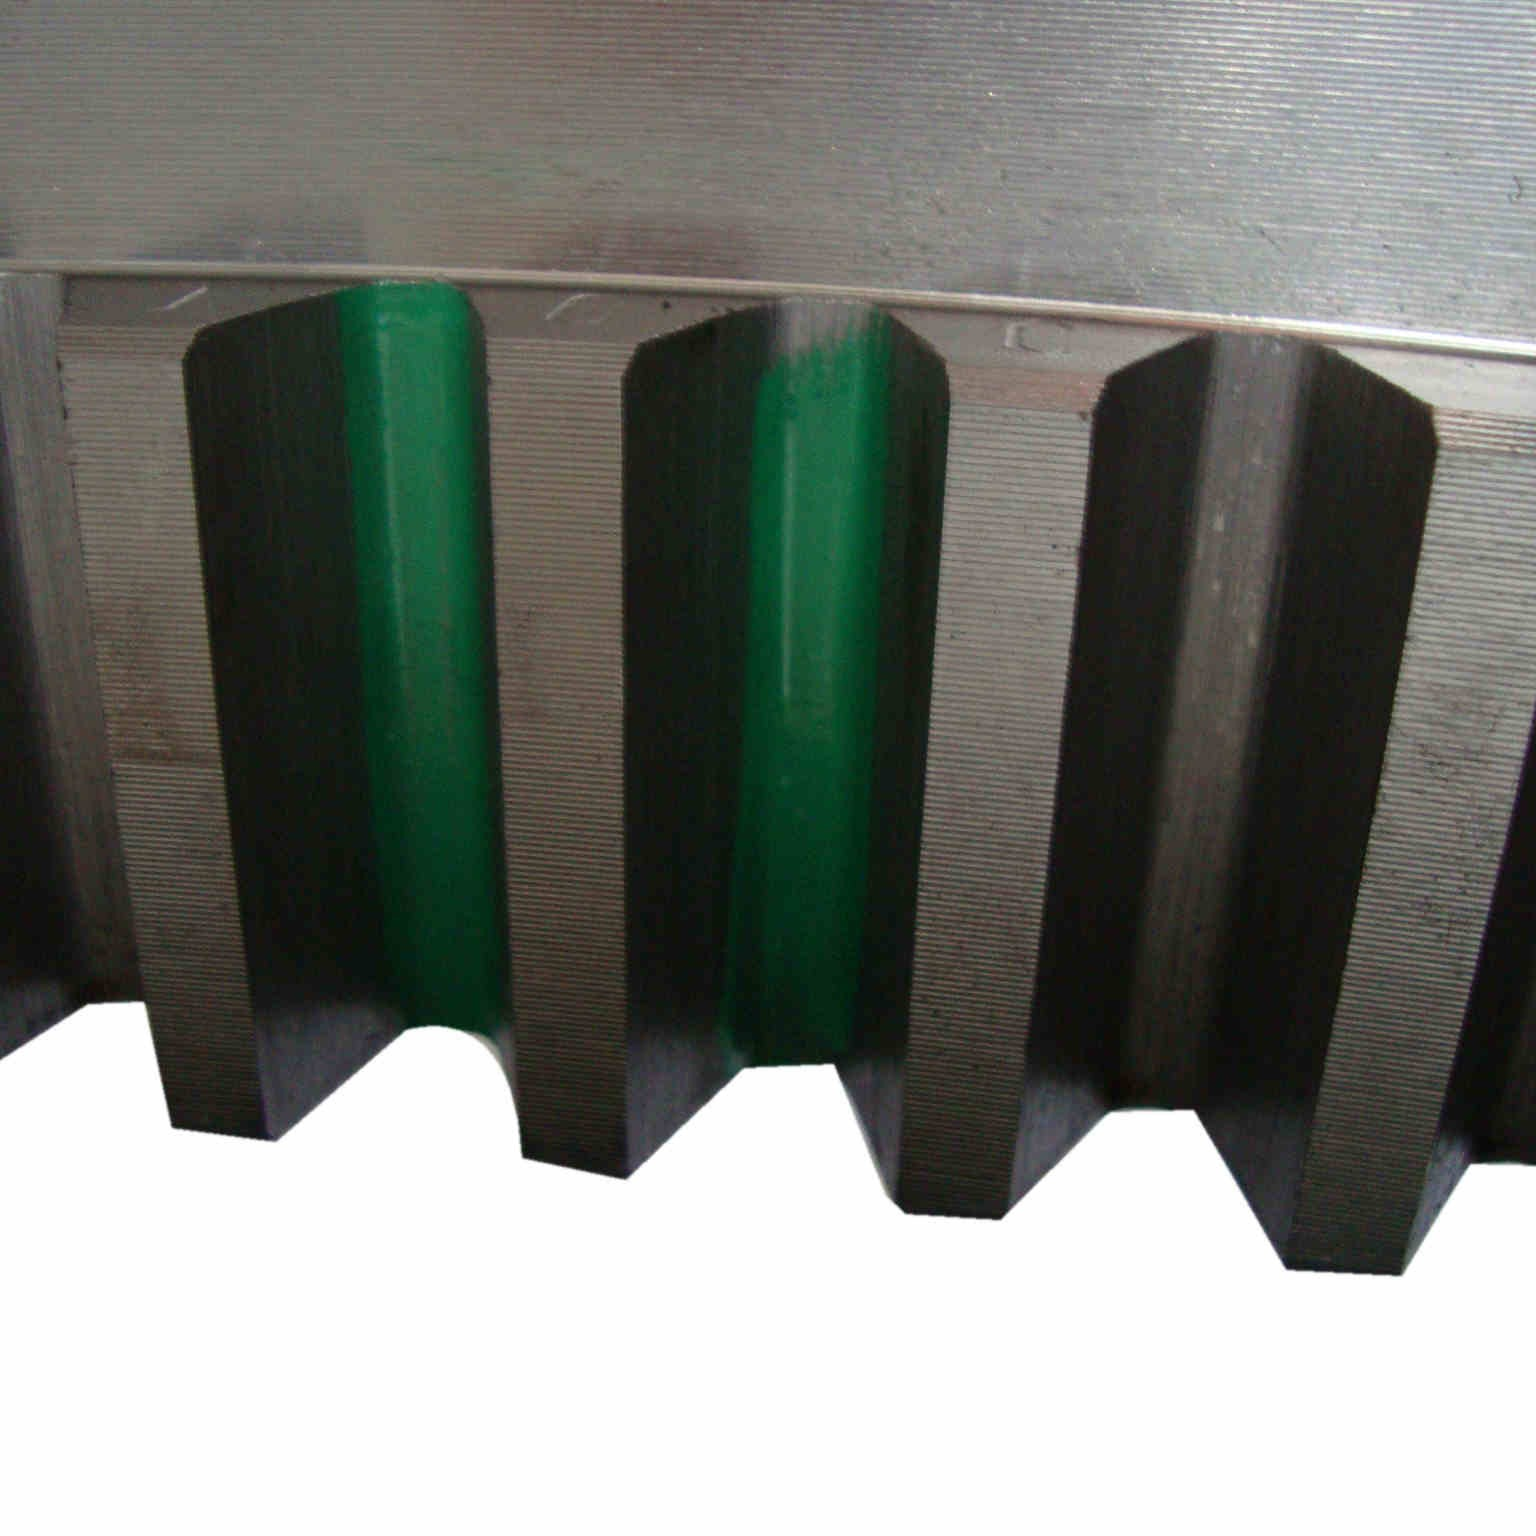 Slewing Bearing Application For Forklift Attachments Manufacturers, Slewing Bearing Application For Forklift Attachments Factory, Supply Slewing Bearing Application For Forklift Attachments